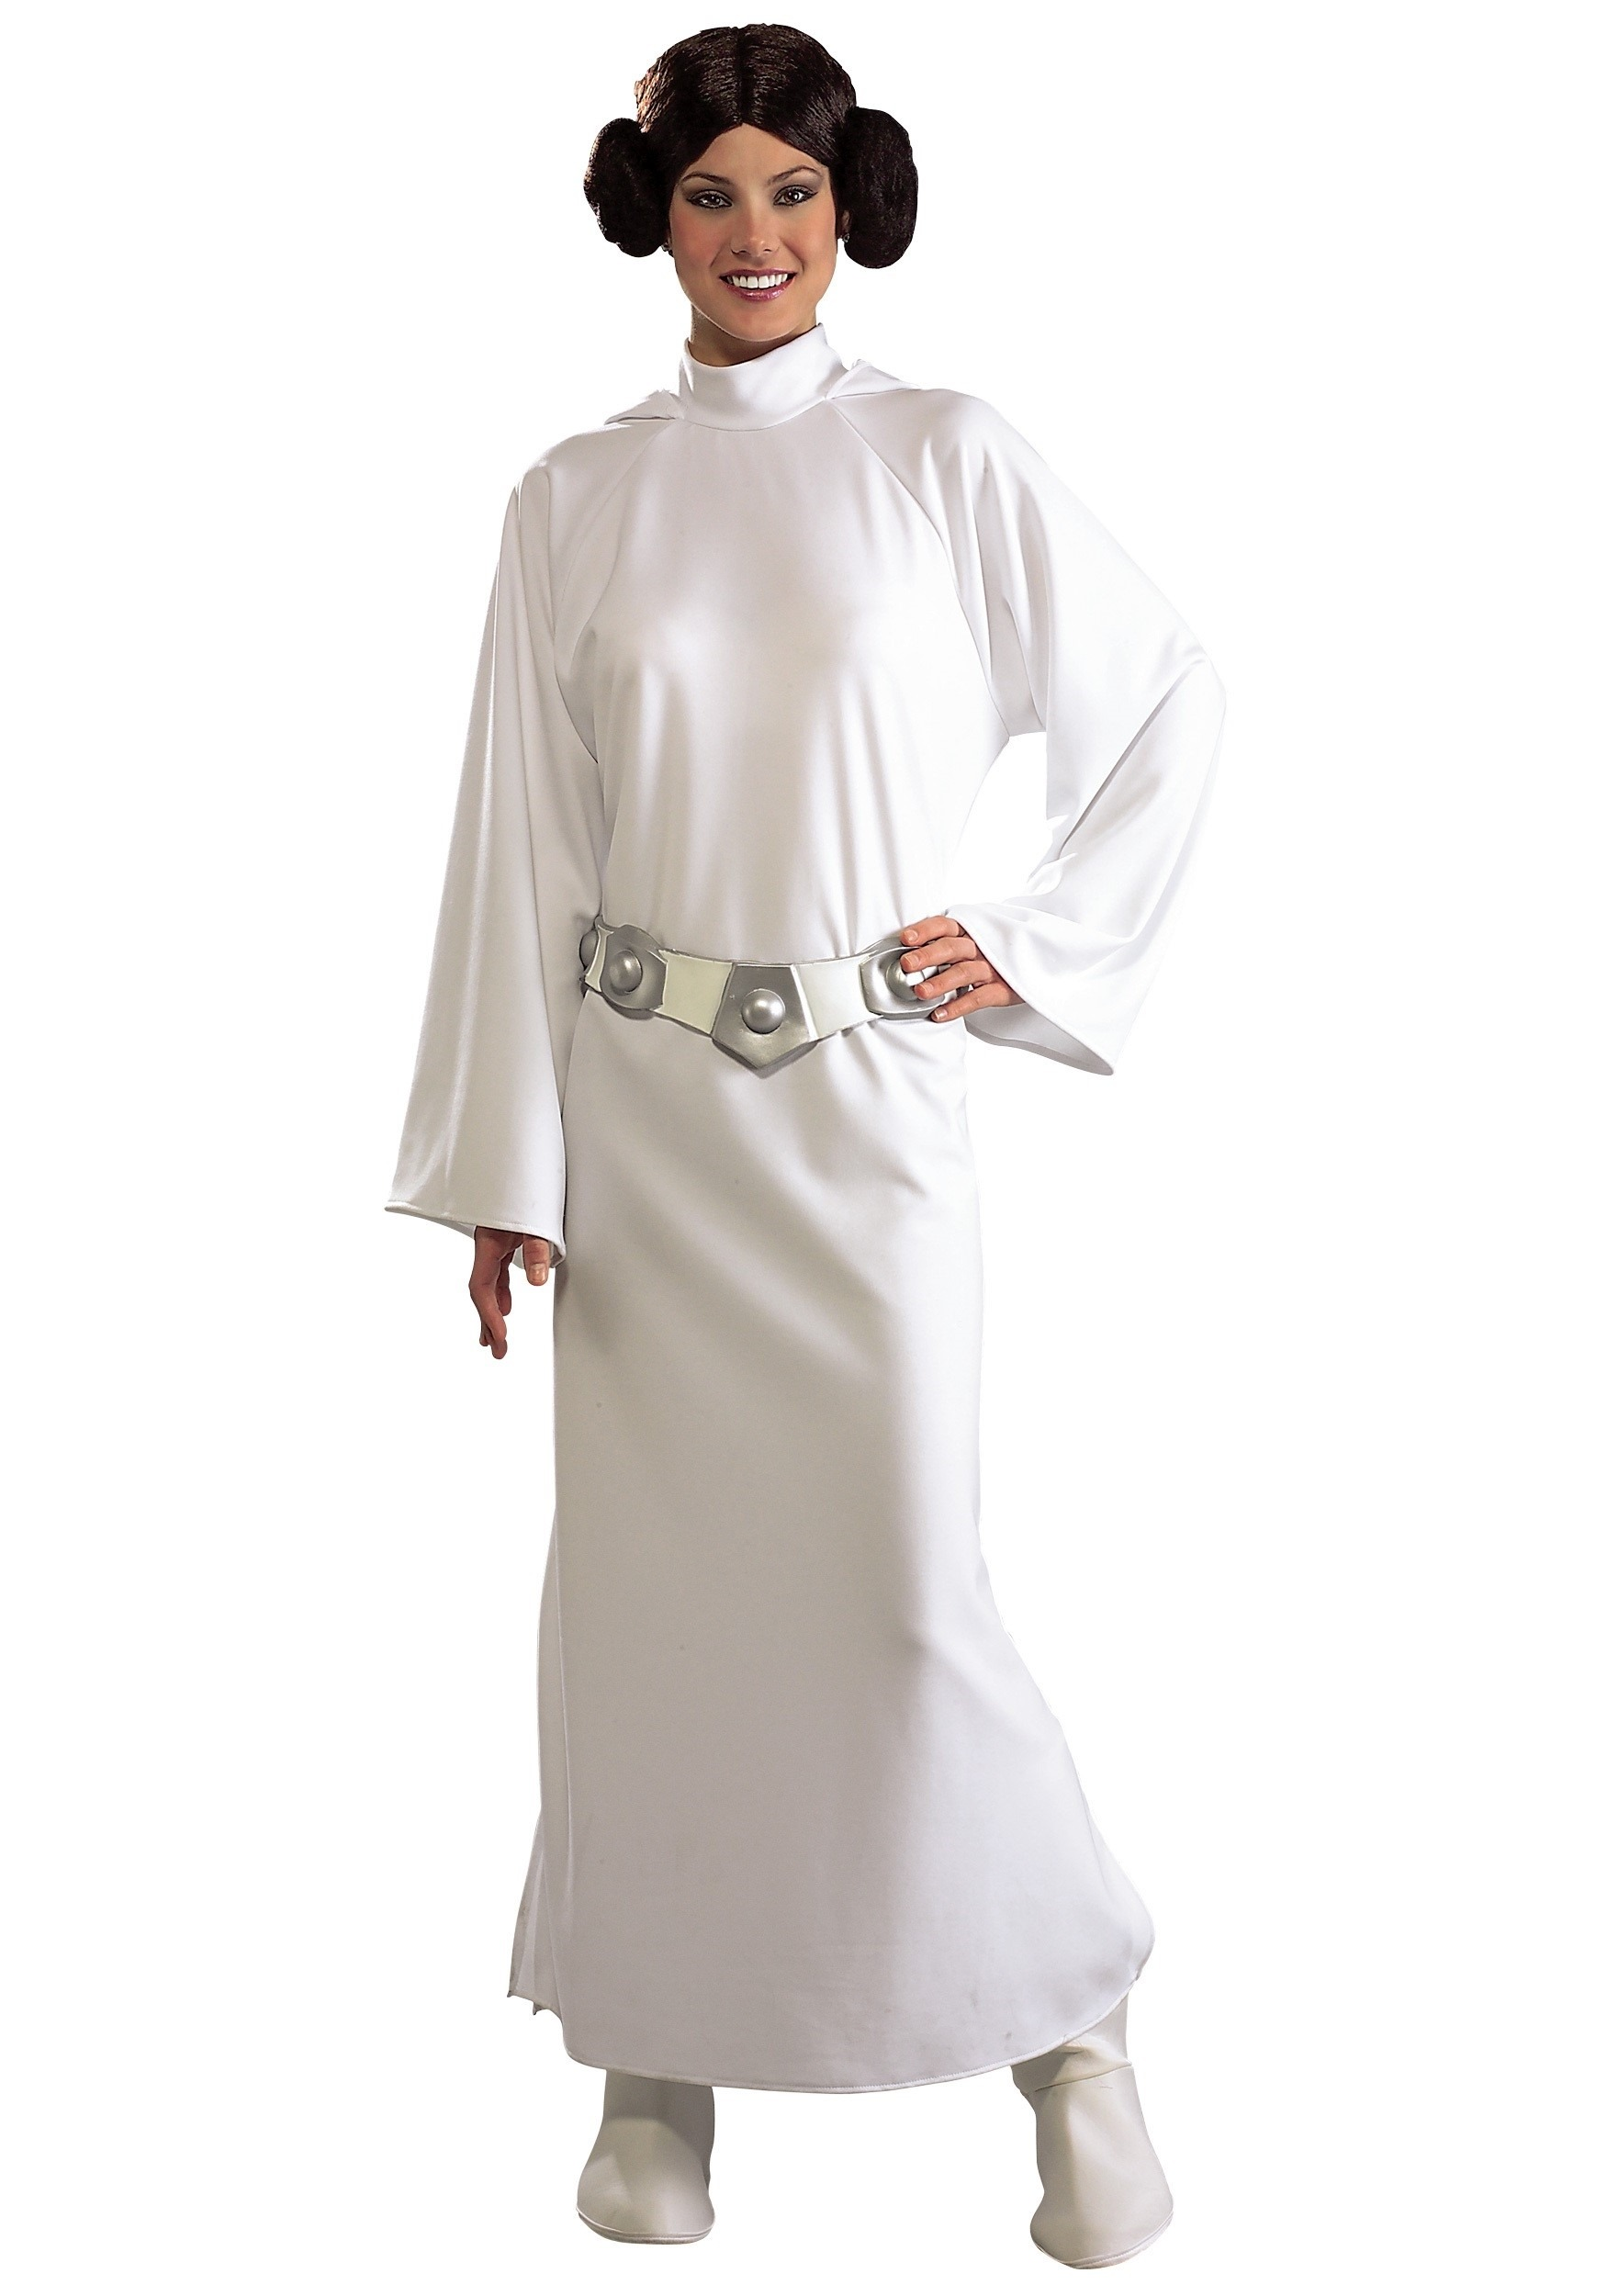 women 39 s princess leia costume. Black Bedroom Furniture Sets. Home Design Ideas